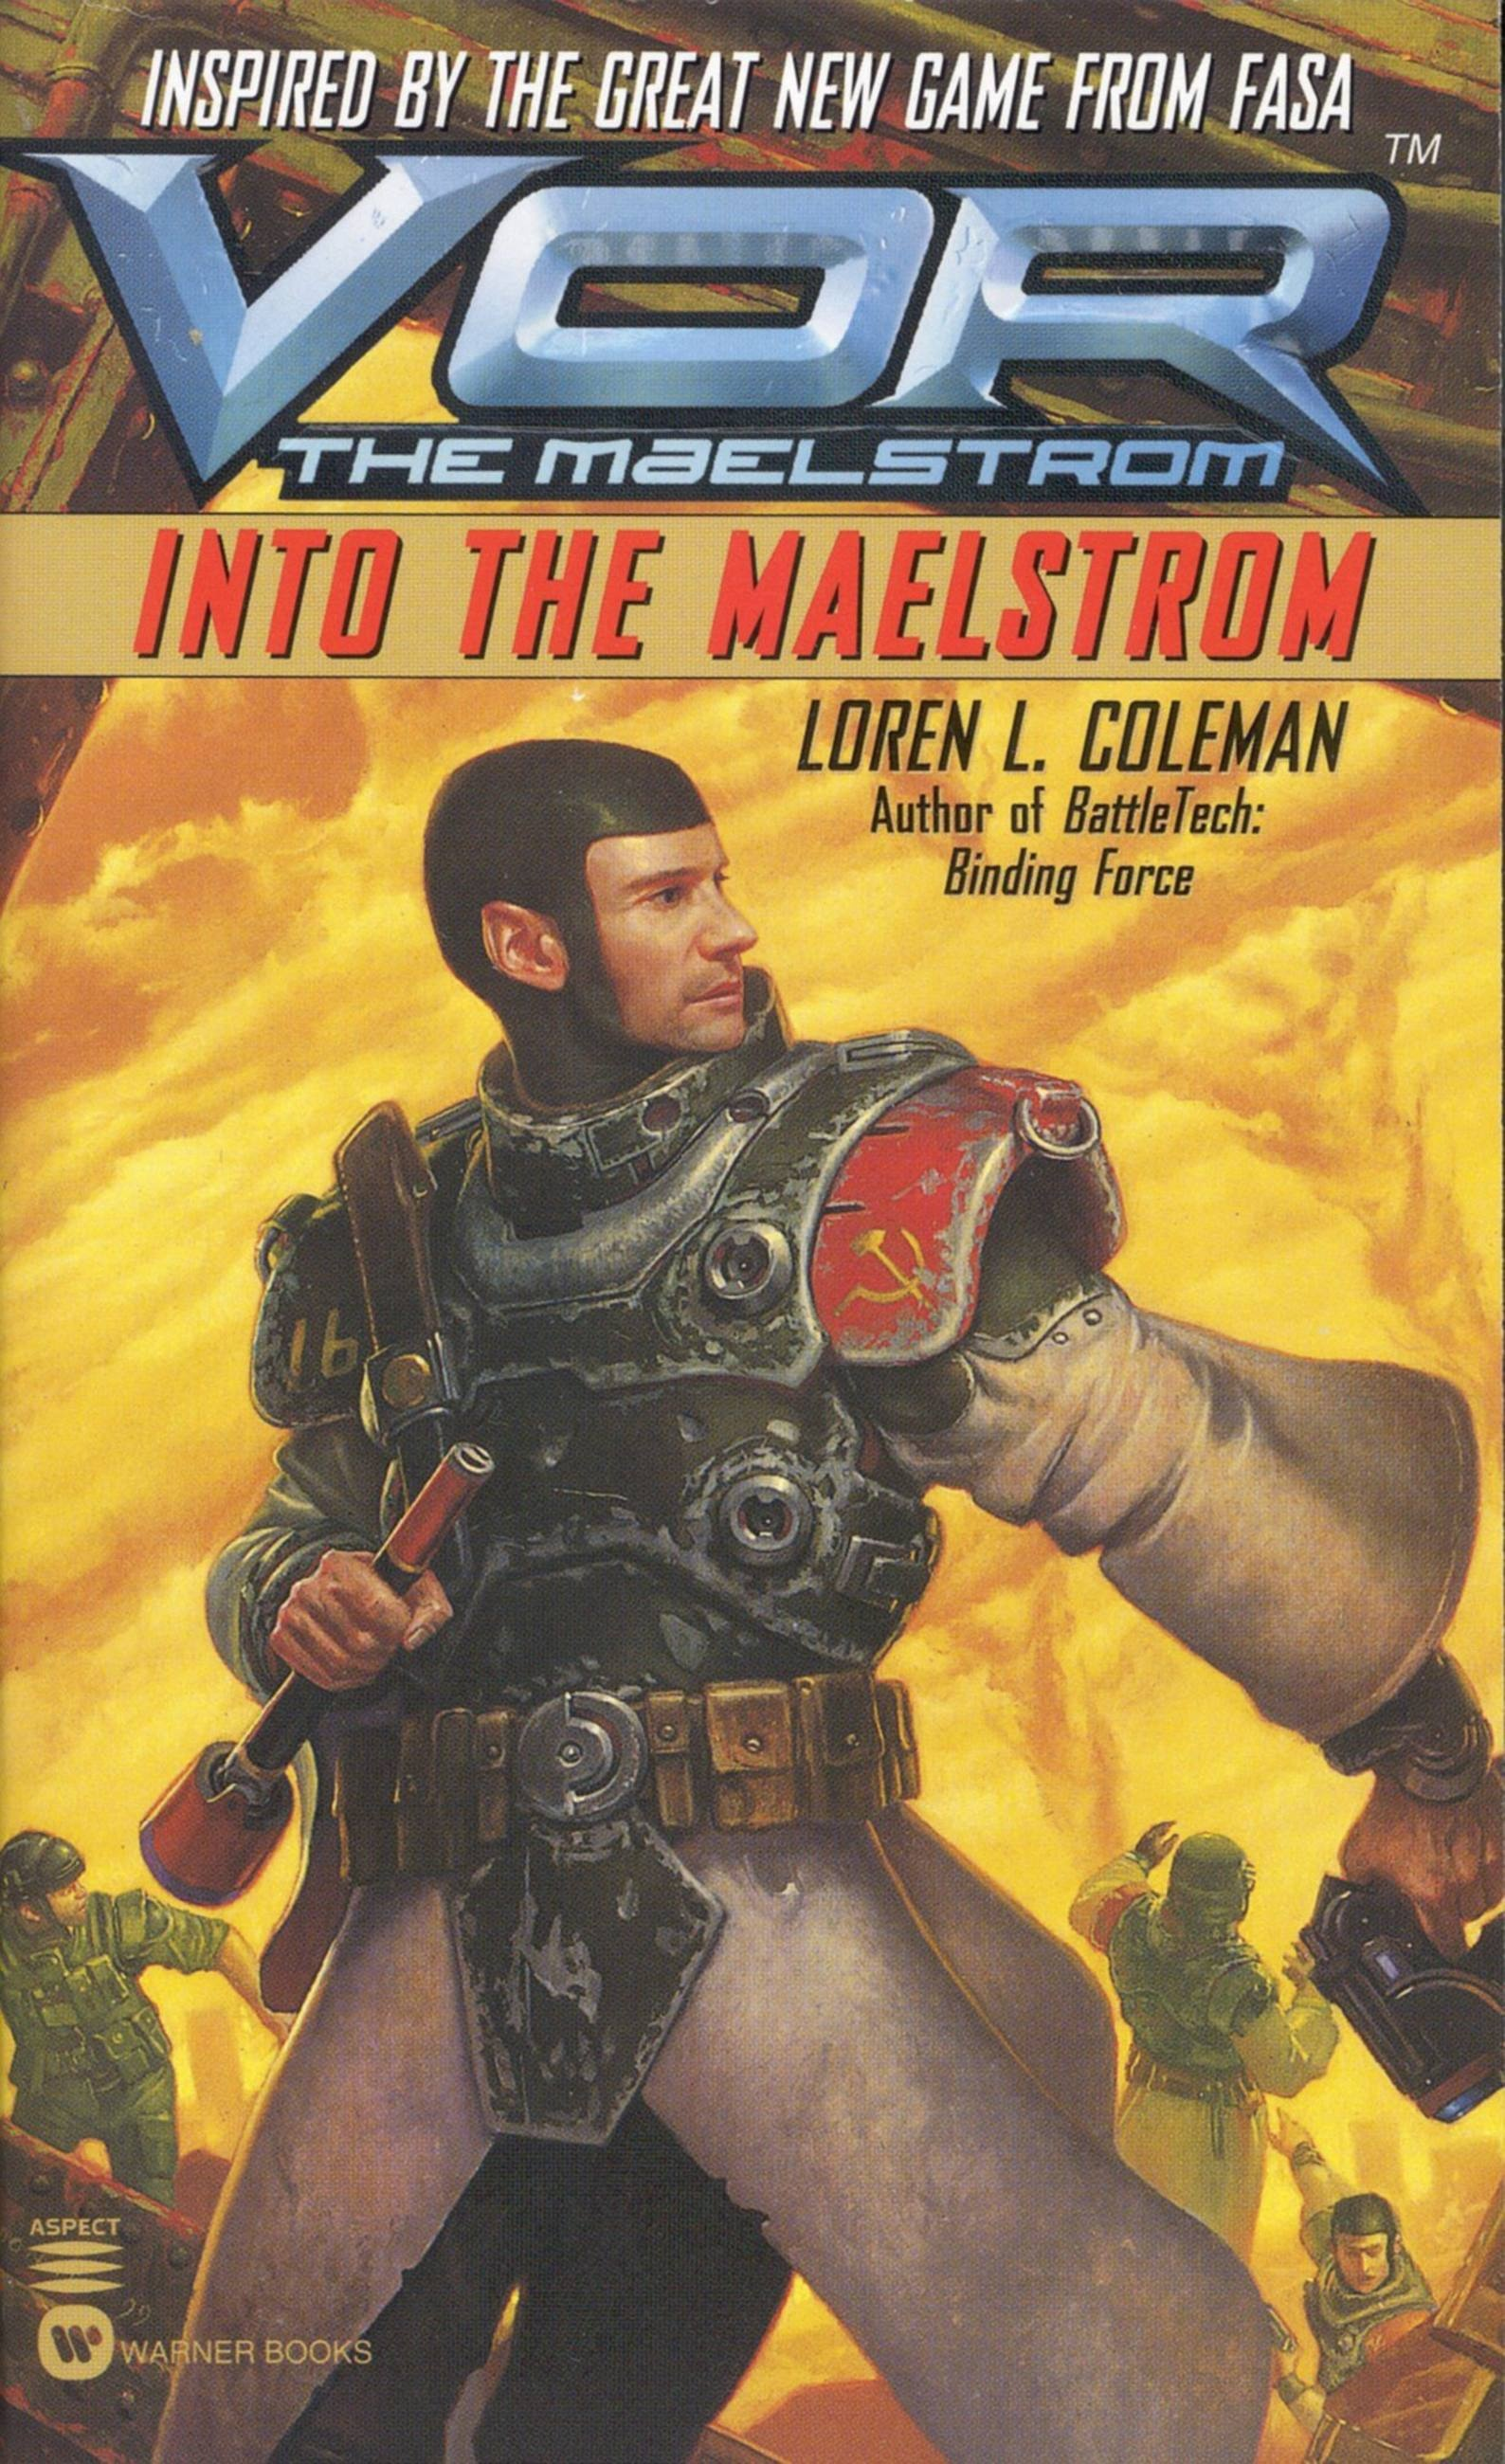 Vor: Into the Maelstrom